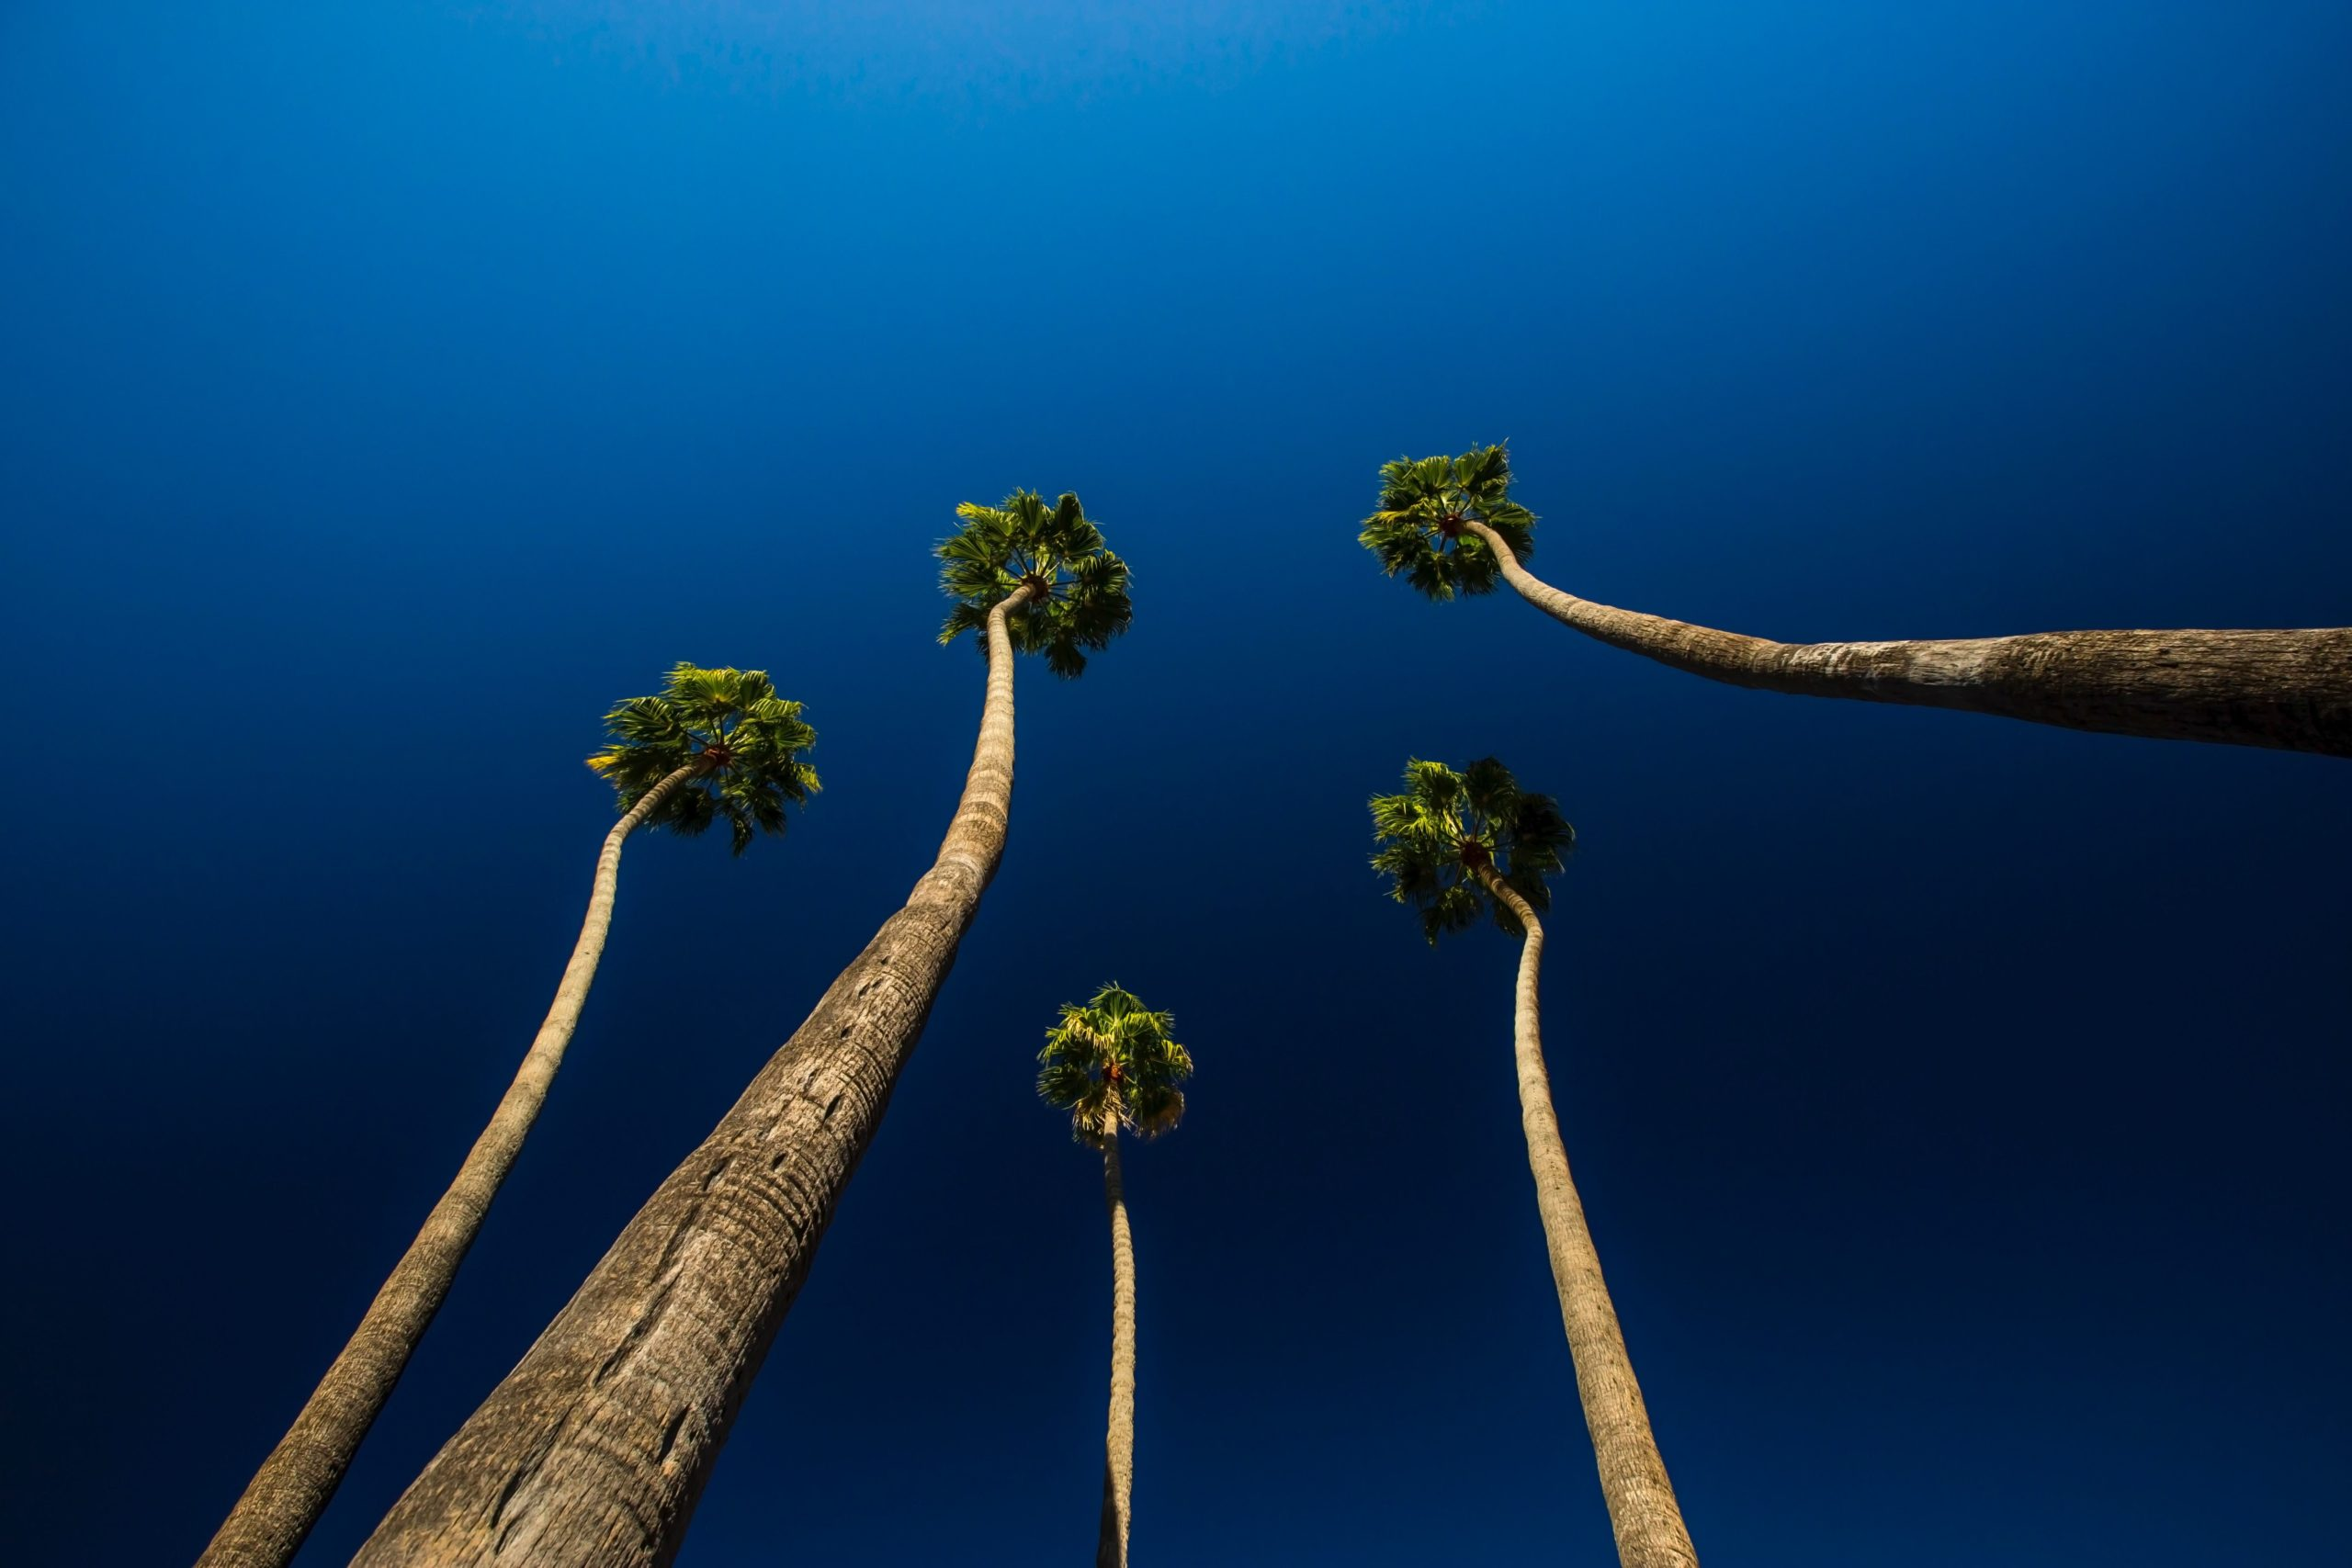 Bottom view of five long trees under the blue sky